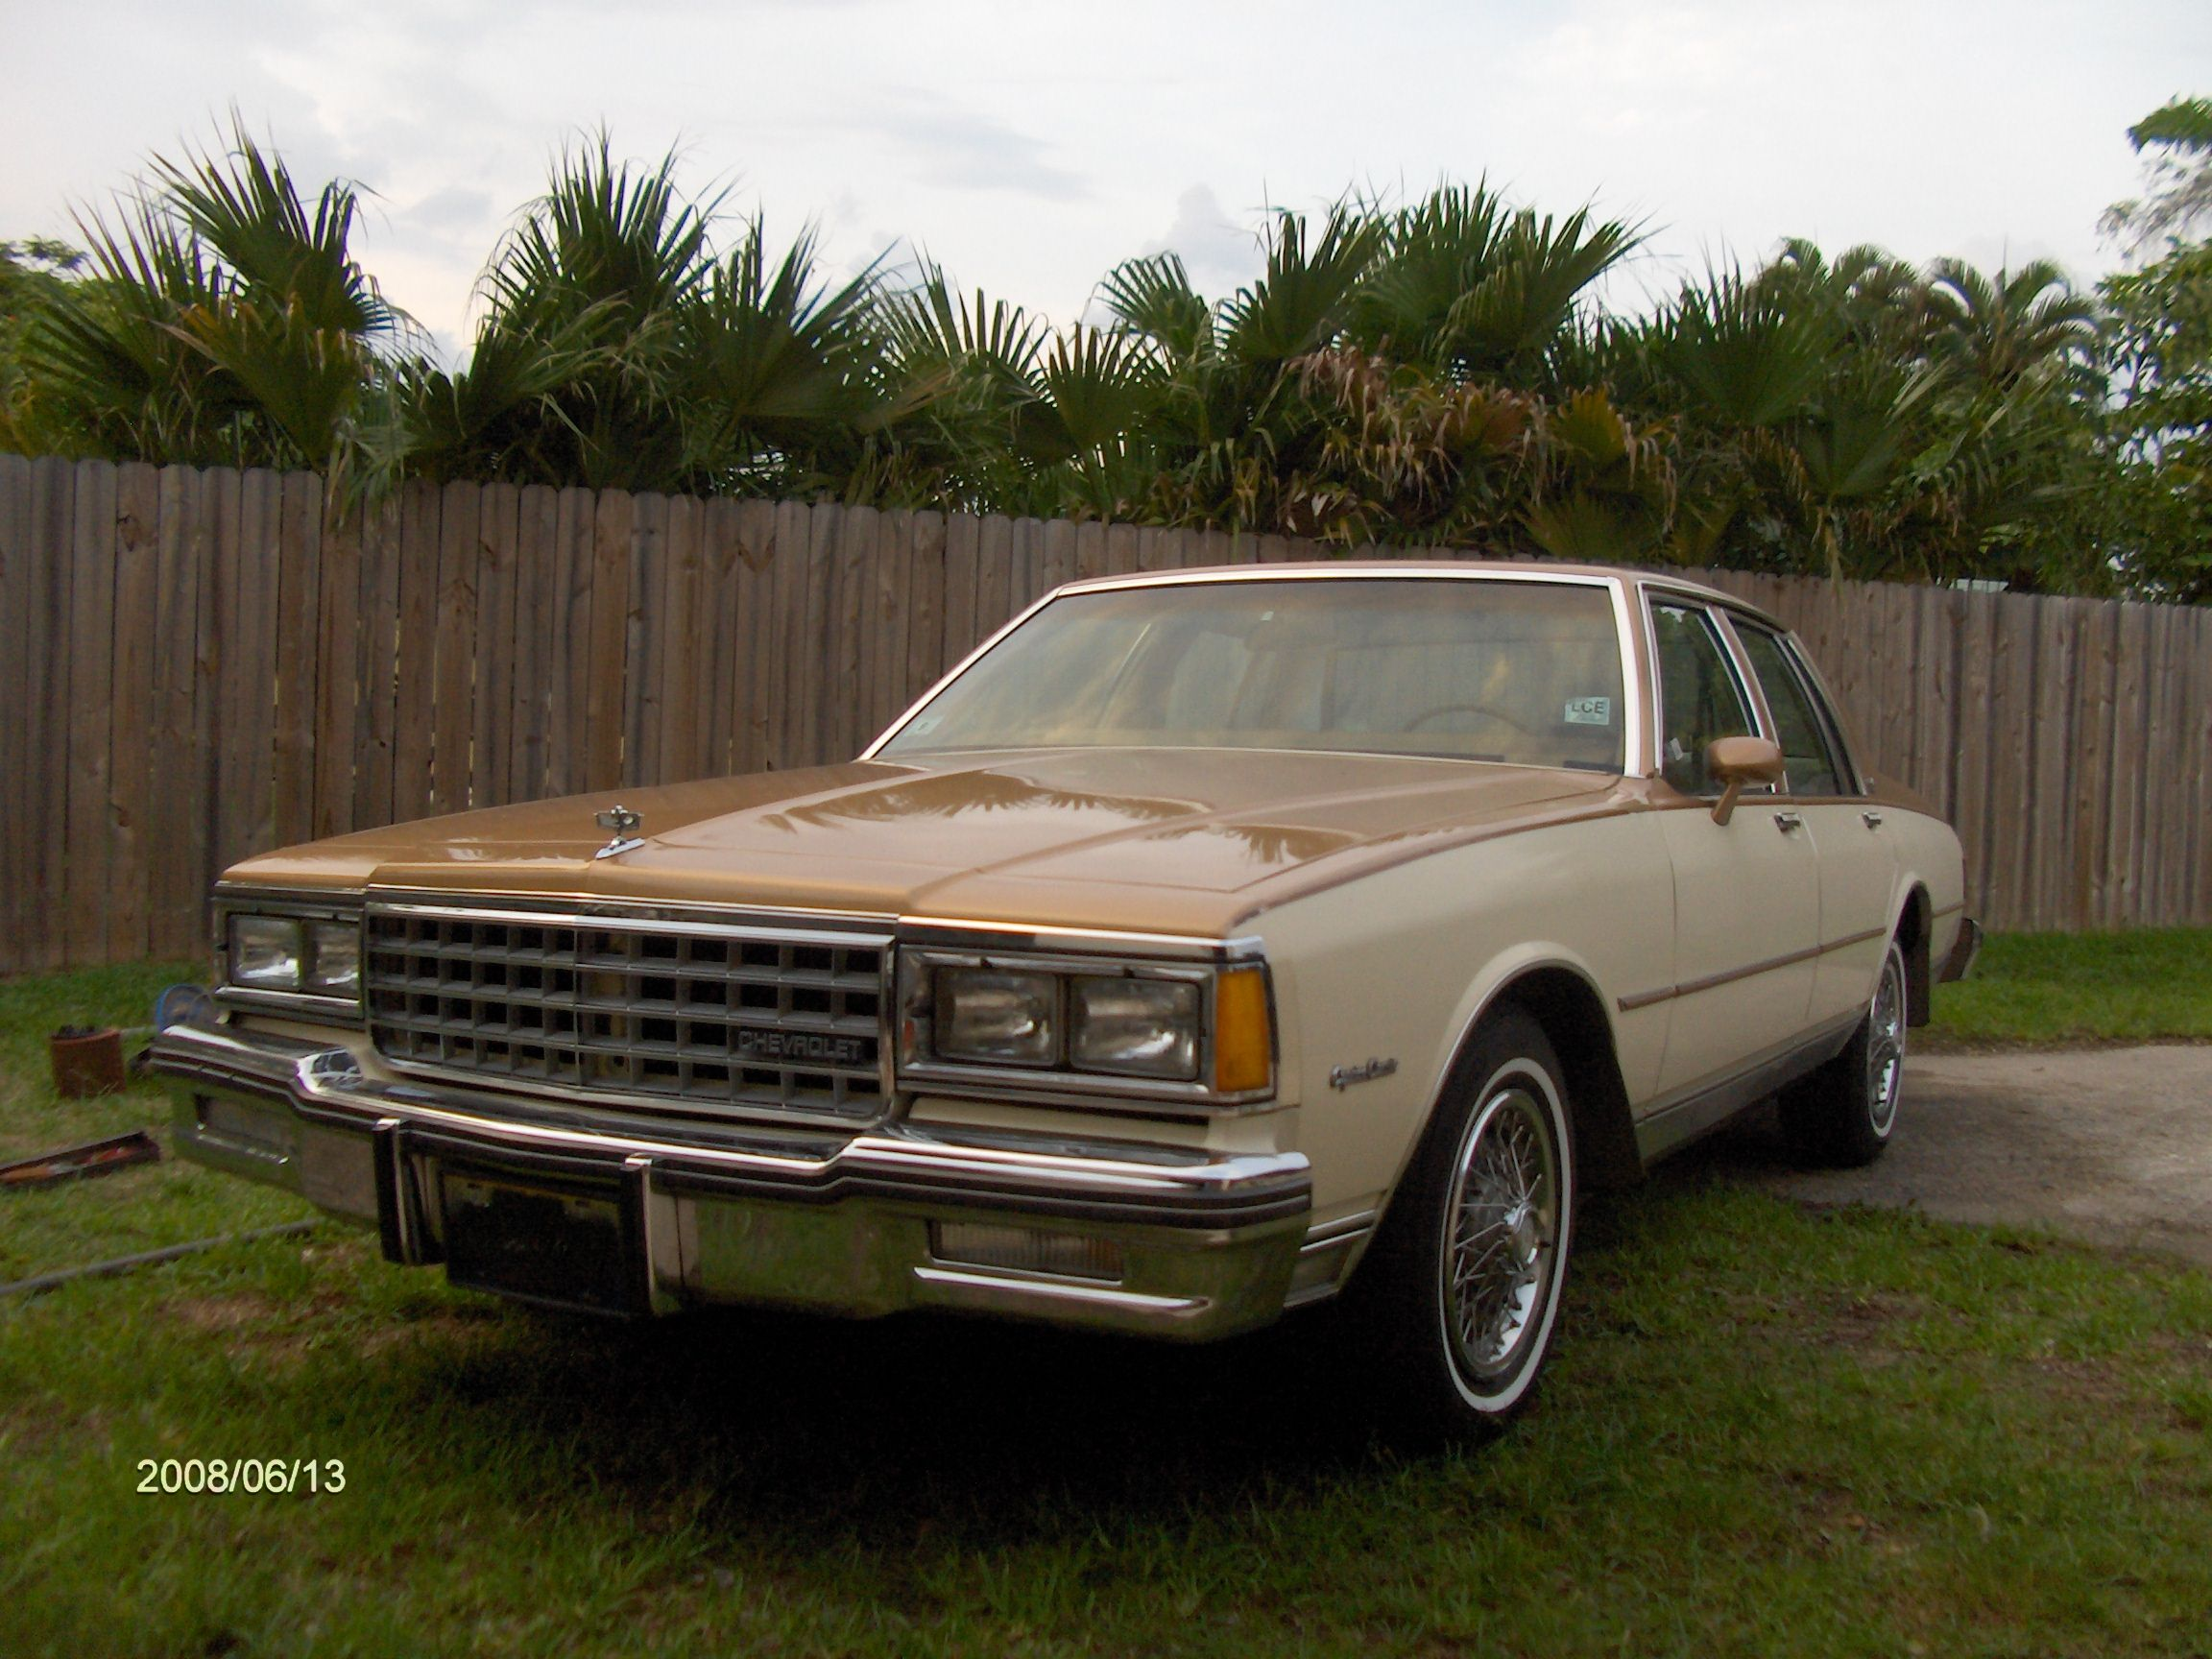 1980 chevrolet caprice classic 1980 86 chevrolet caprice classic. Black Bedroom Furniture Sets. Home Design Ideas